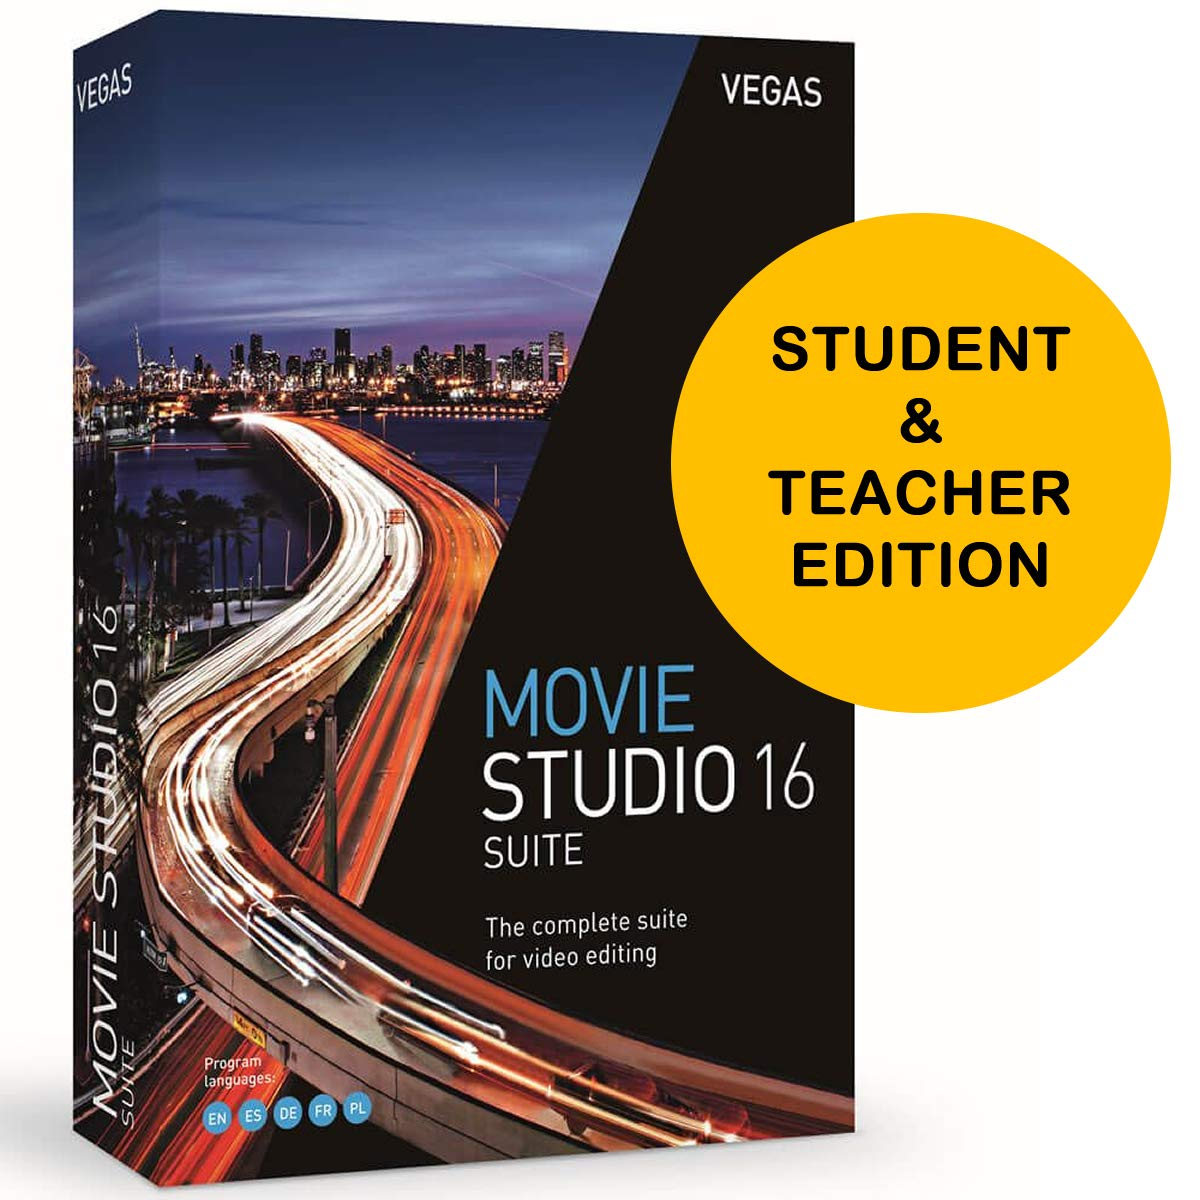 MAGIX VEGAS Movie Studio 16 Suite for Students and Teachers - Complete Video Editing Software by Magix-Genesis